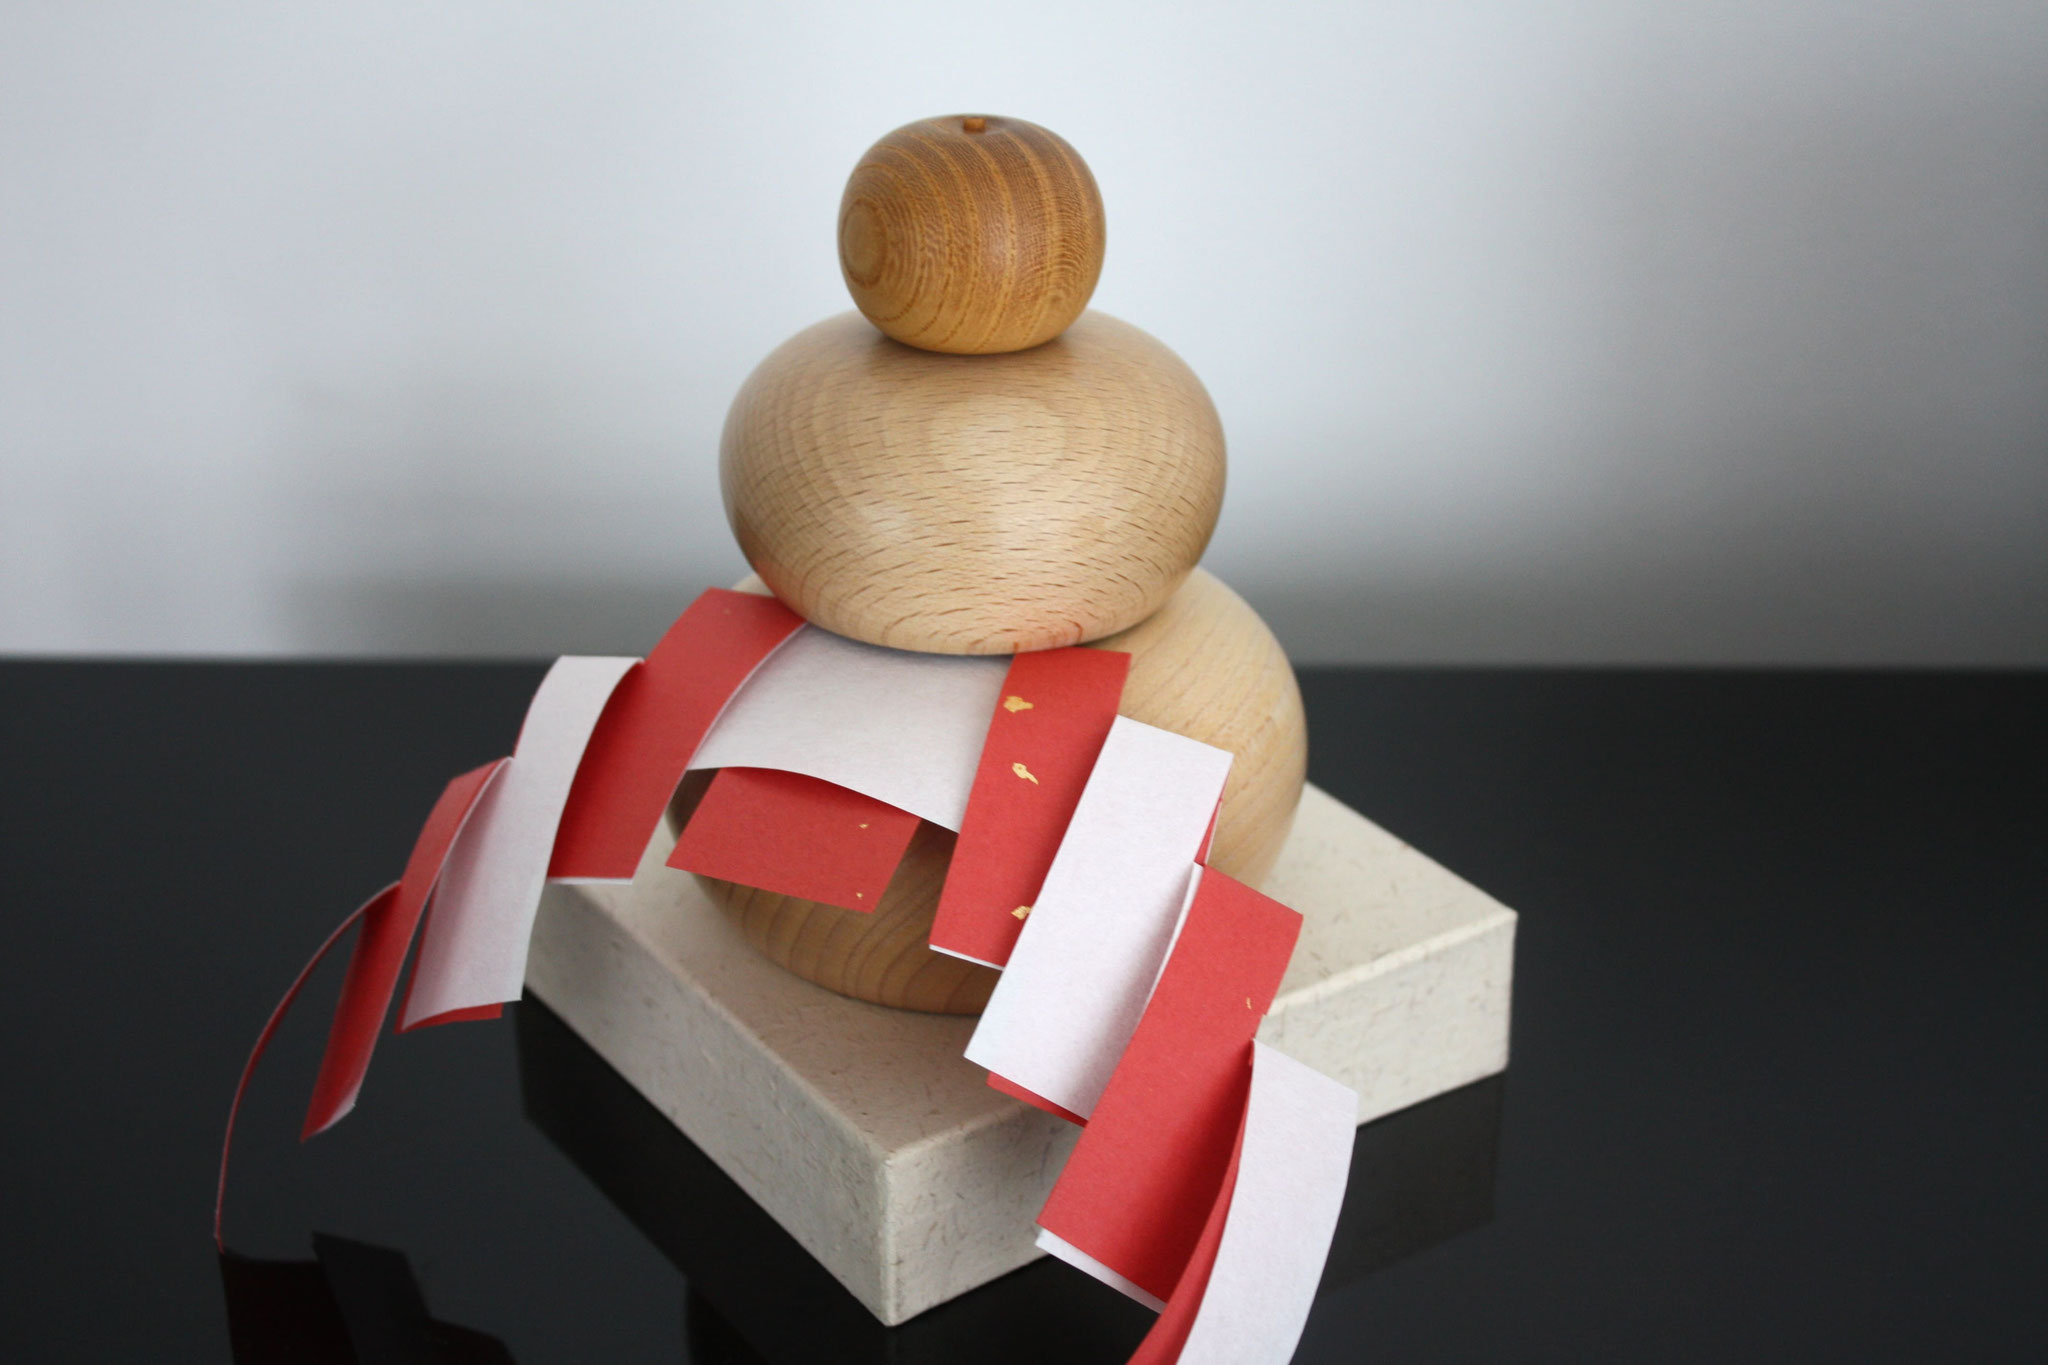 Kagami-mochi by a joiner